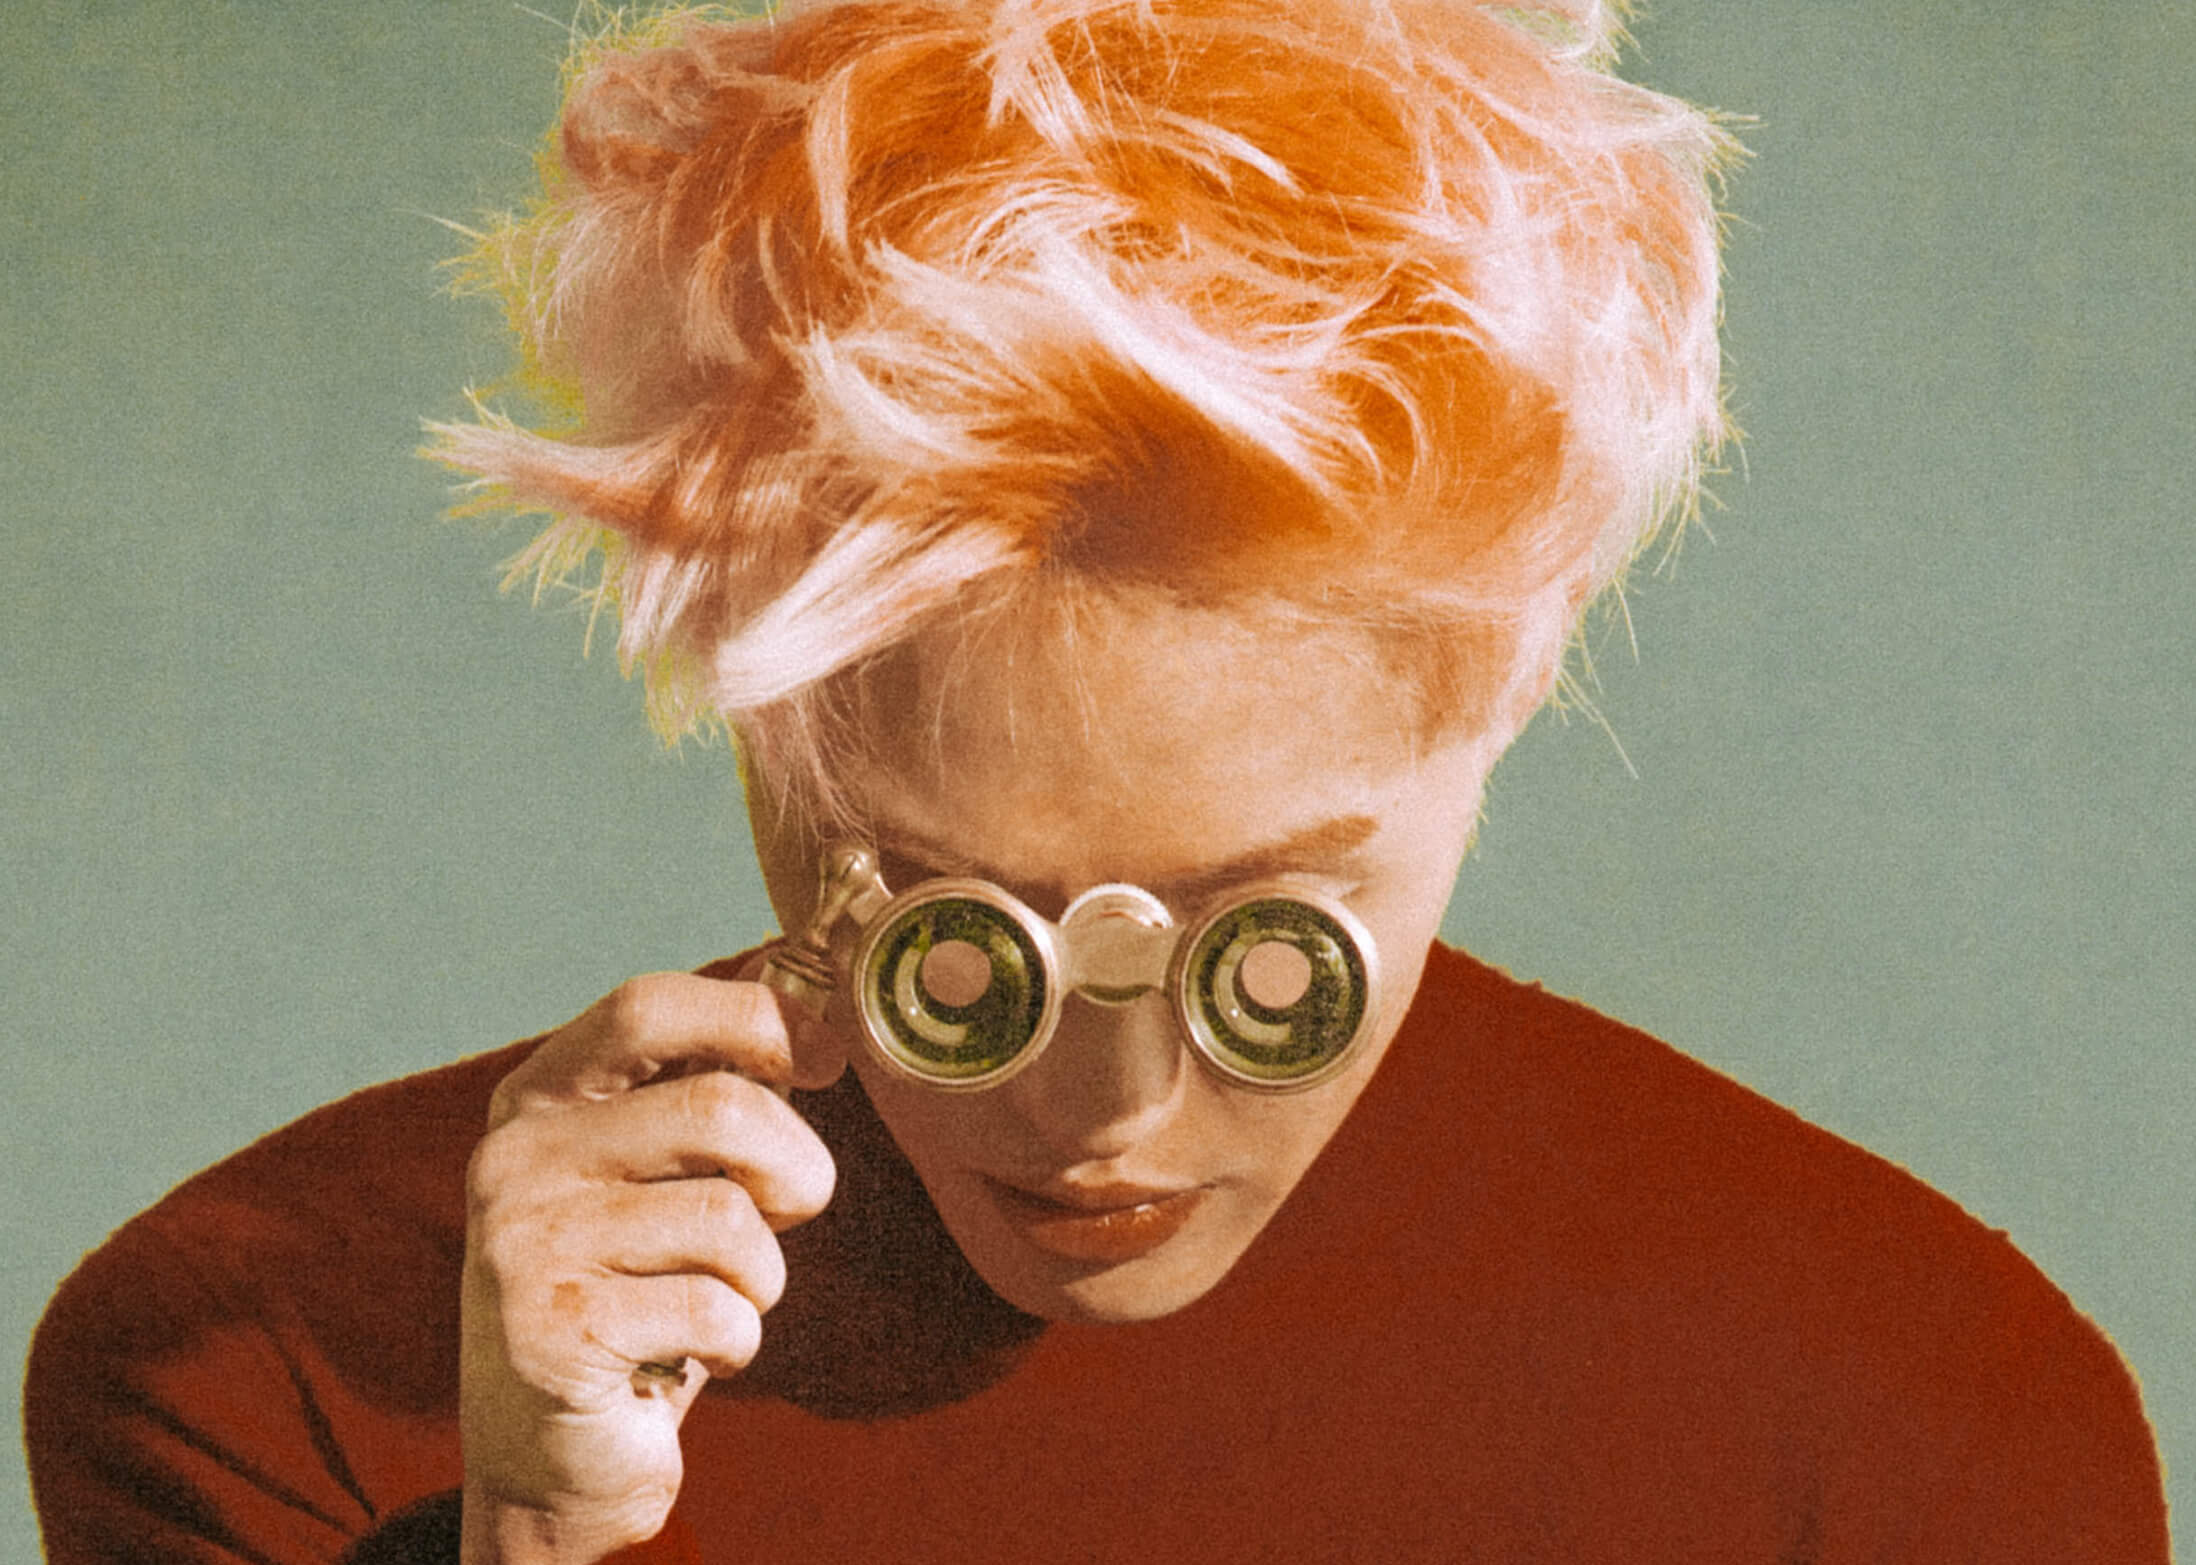 Zion.T Powers Through To The Top Of The Music Charts